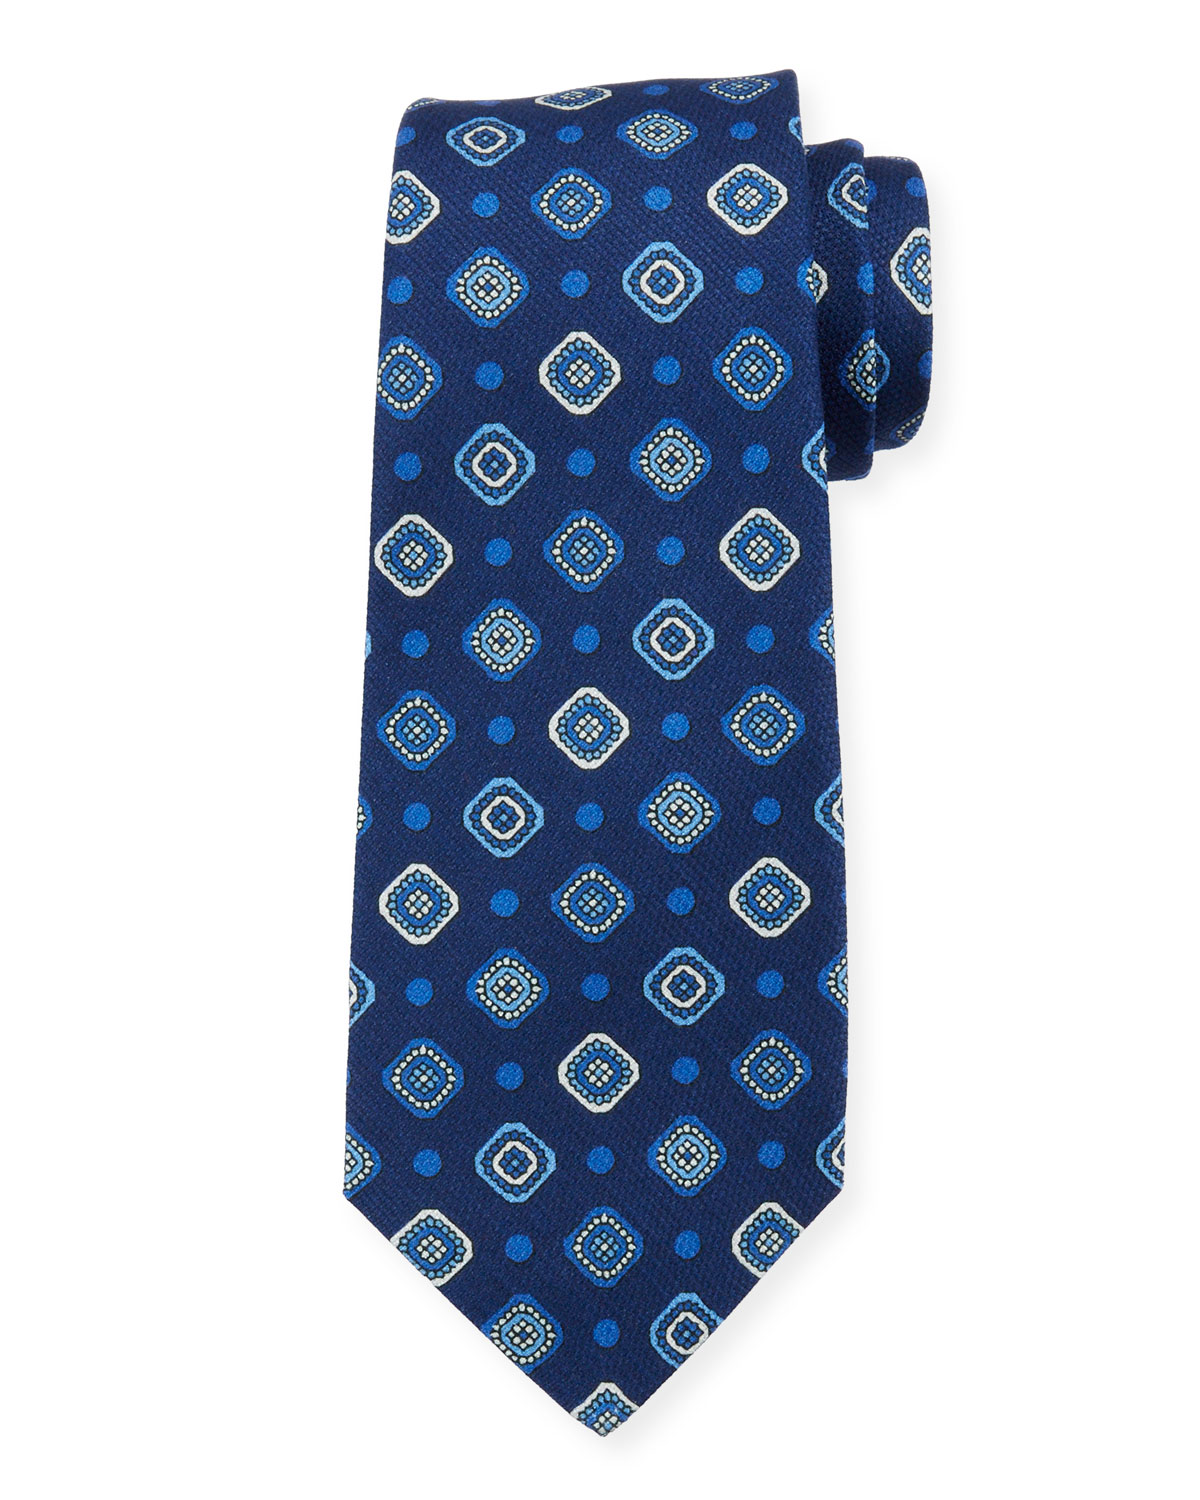 Kiton Ties FANCY BOX SILK TIE